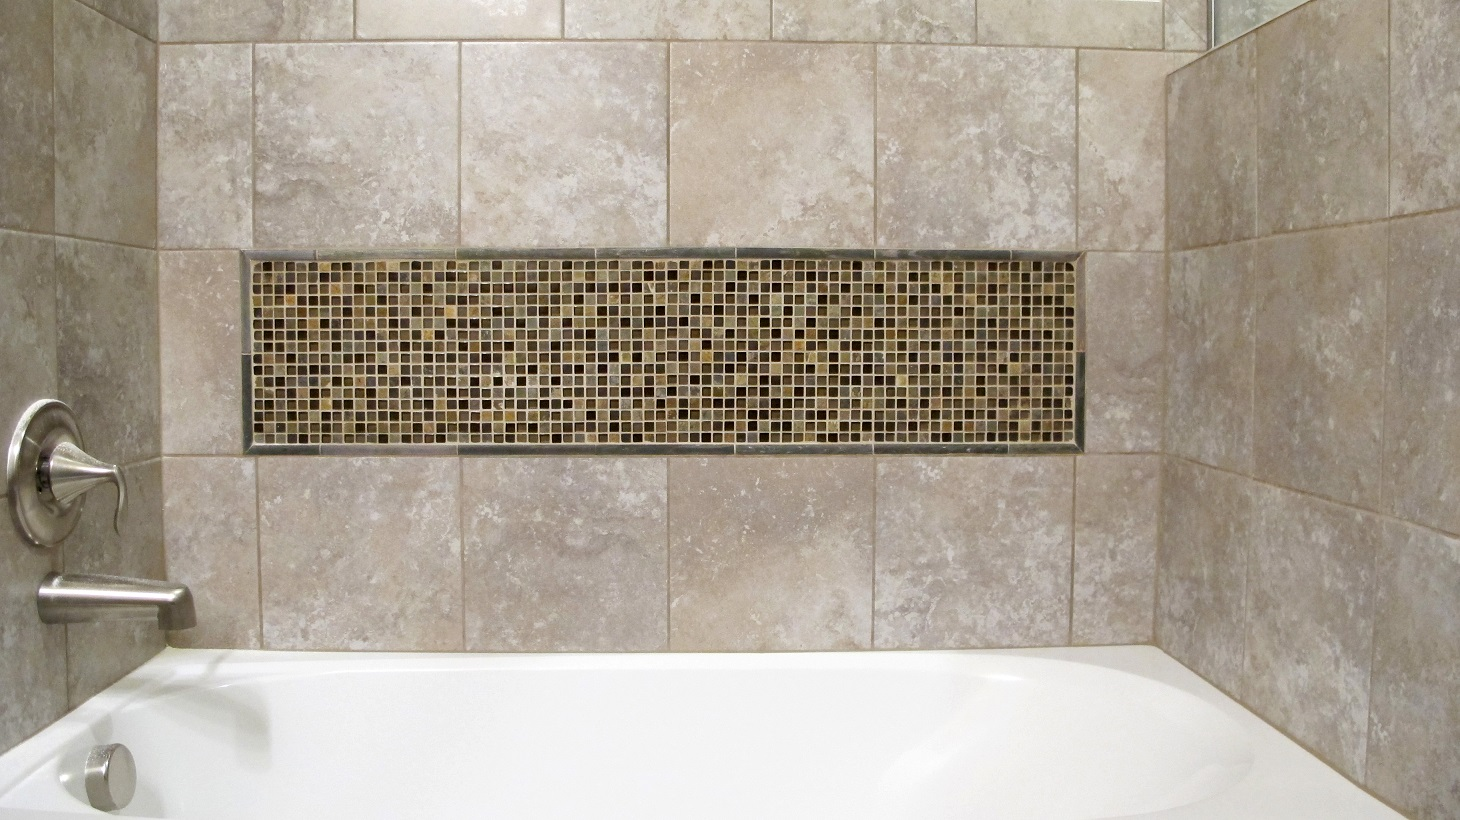 Cascade retreat guest bathroom slide in bath tub with tile surround and decorative mosaic insert slate glass mix dailygadgetfo Choice Image